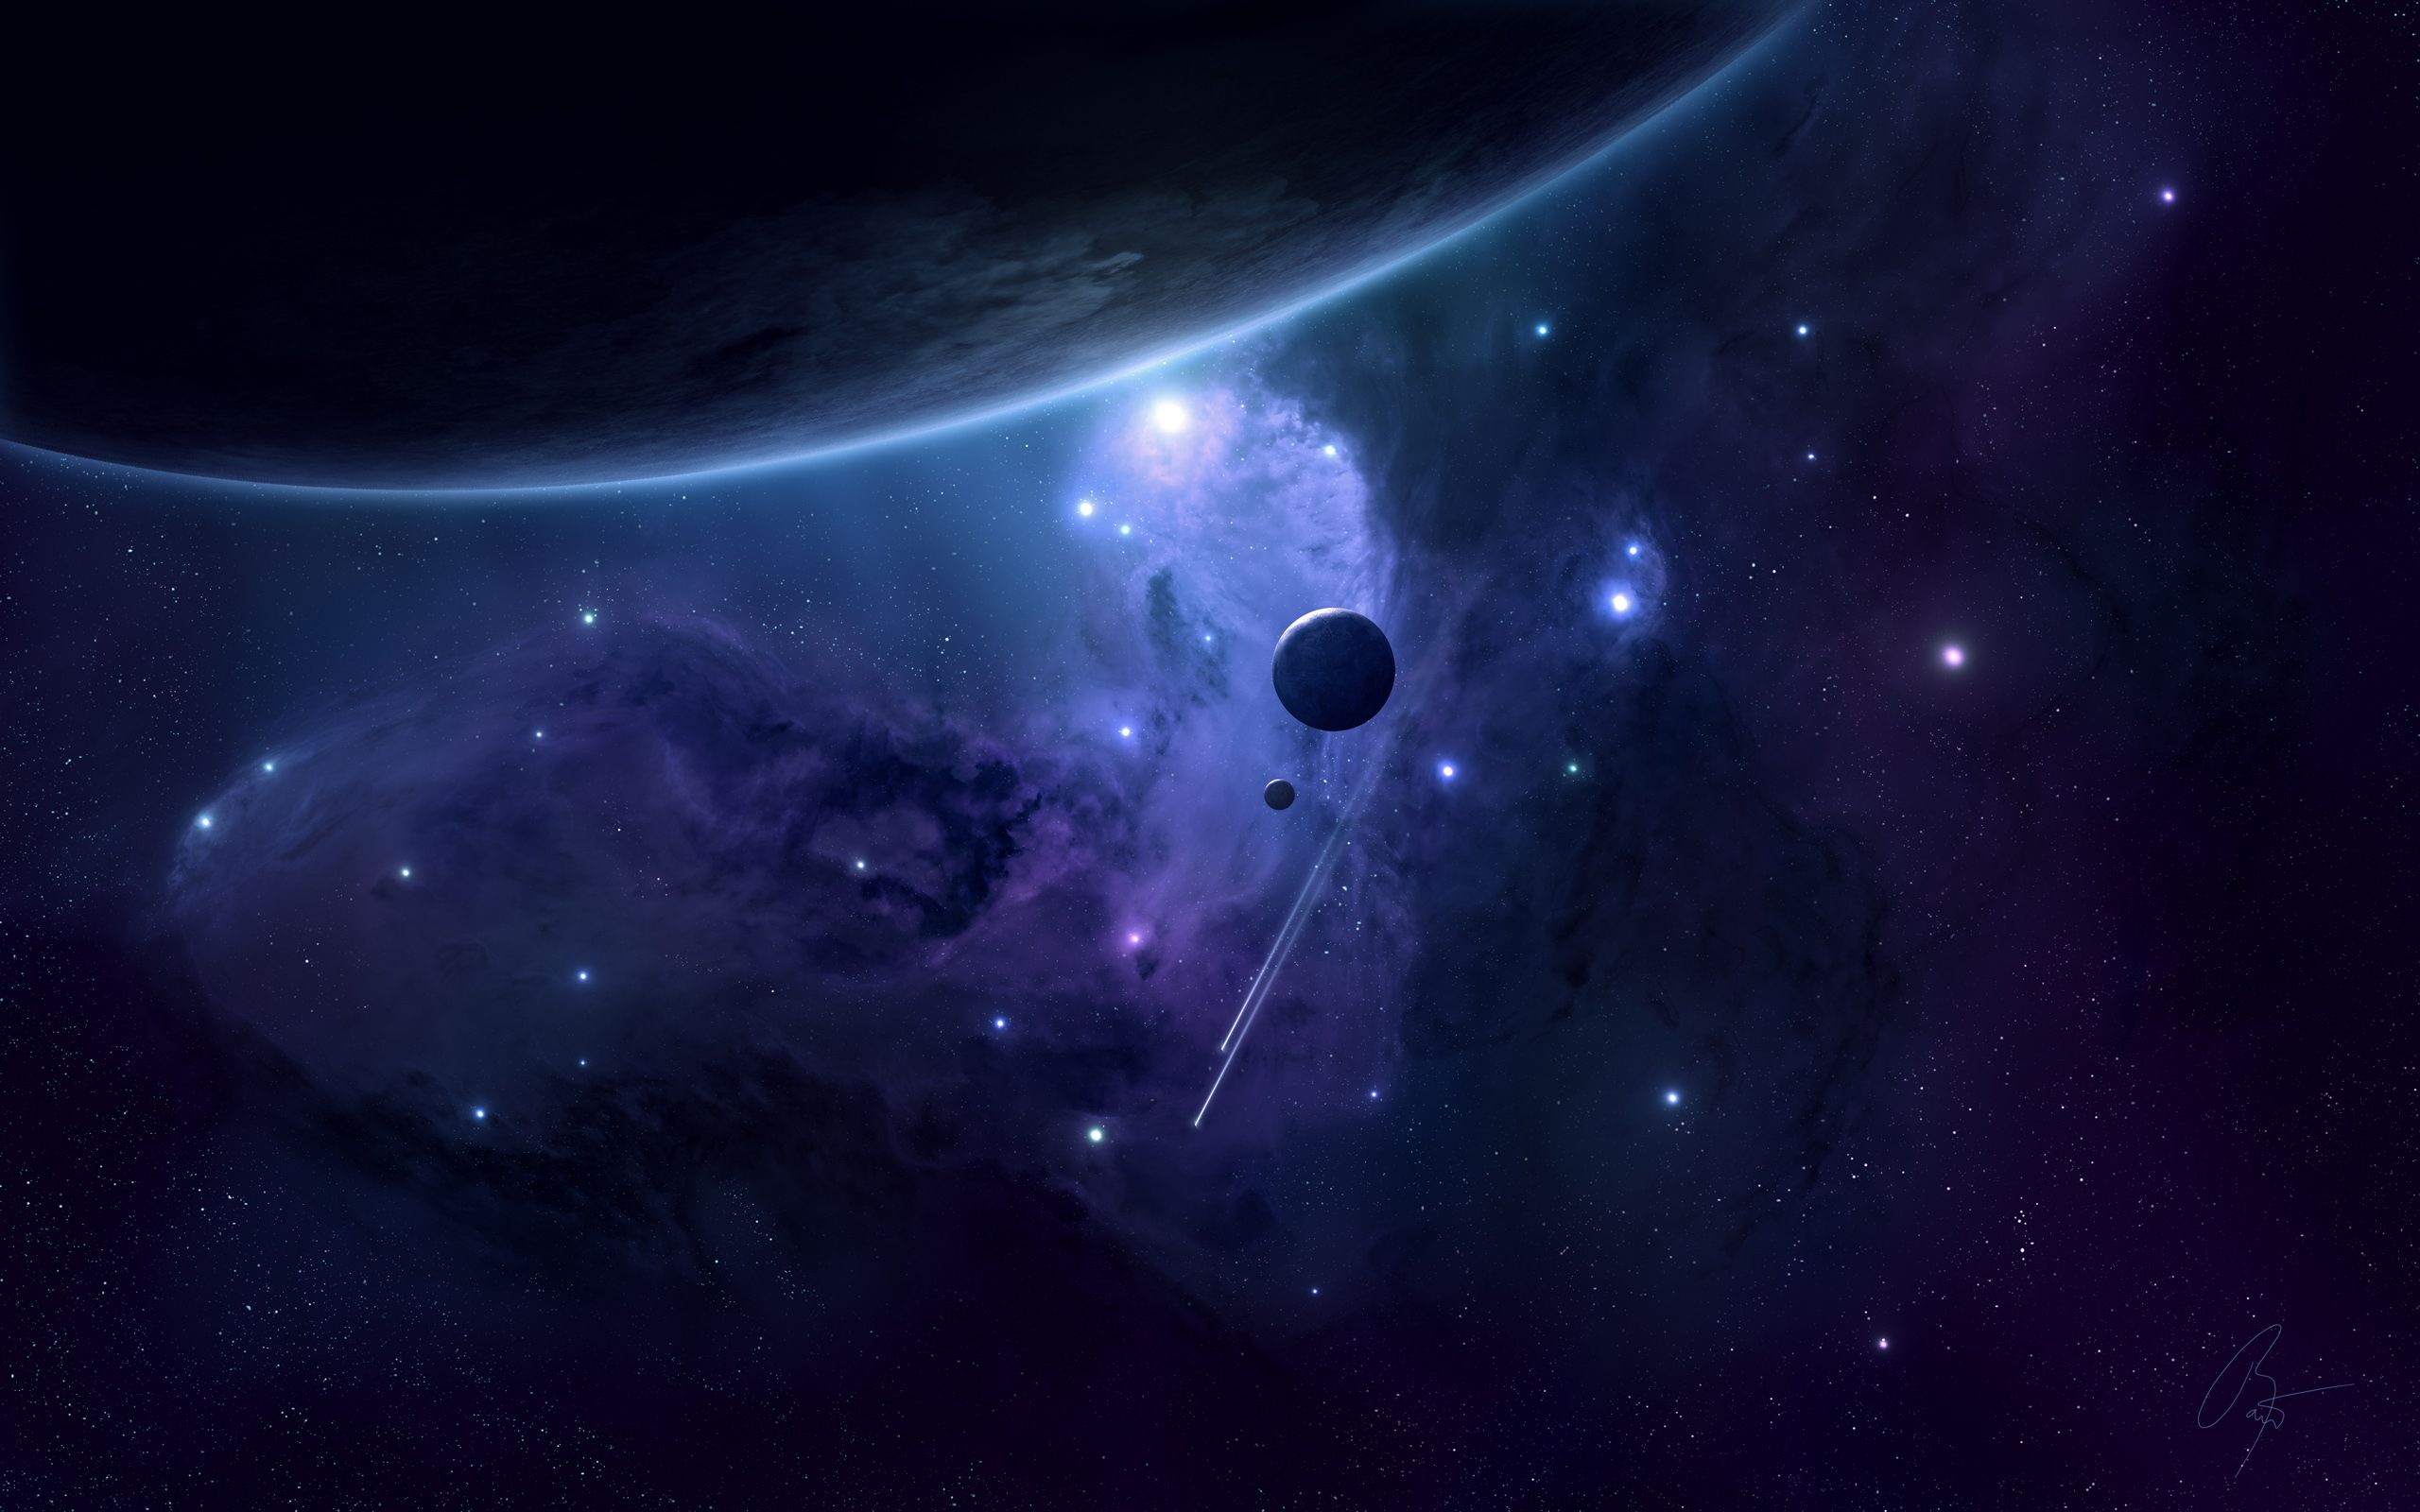 2560x1600 Planets Wallpapers   HD Wallpapers   ID #11058